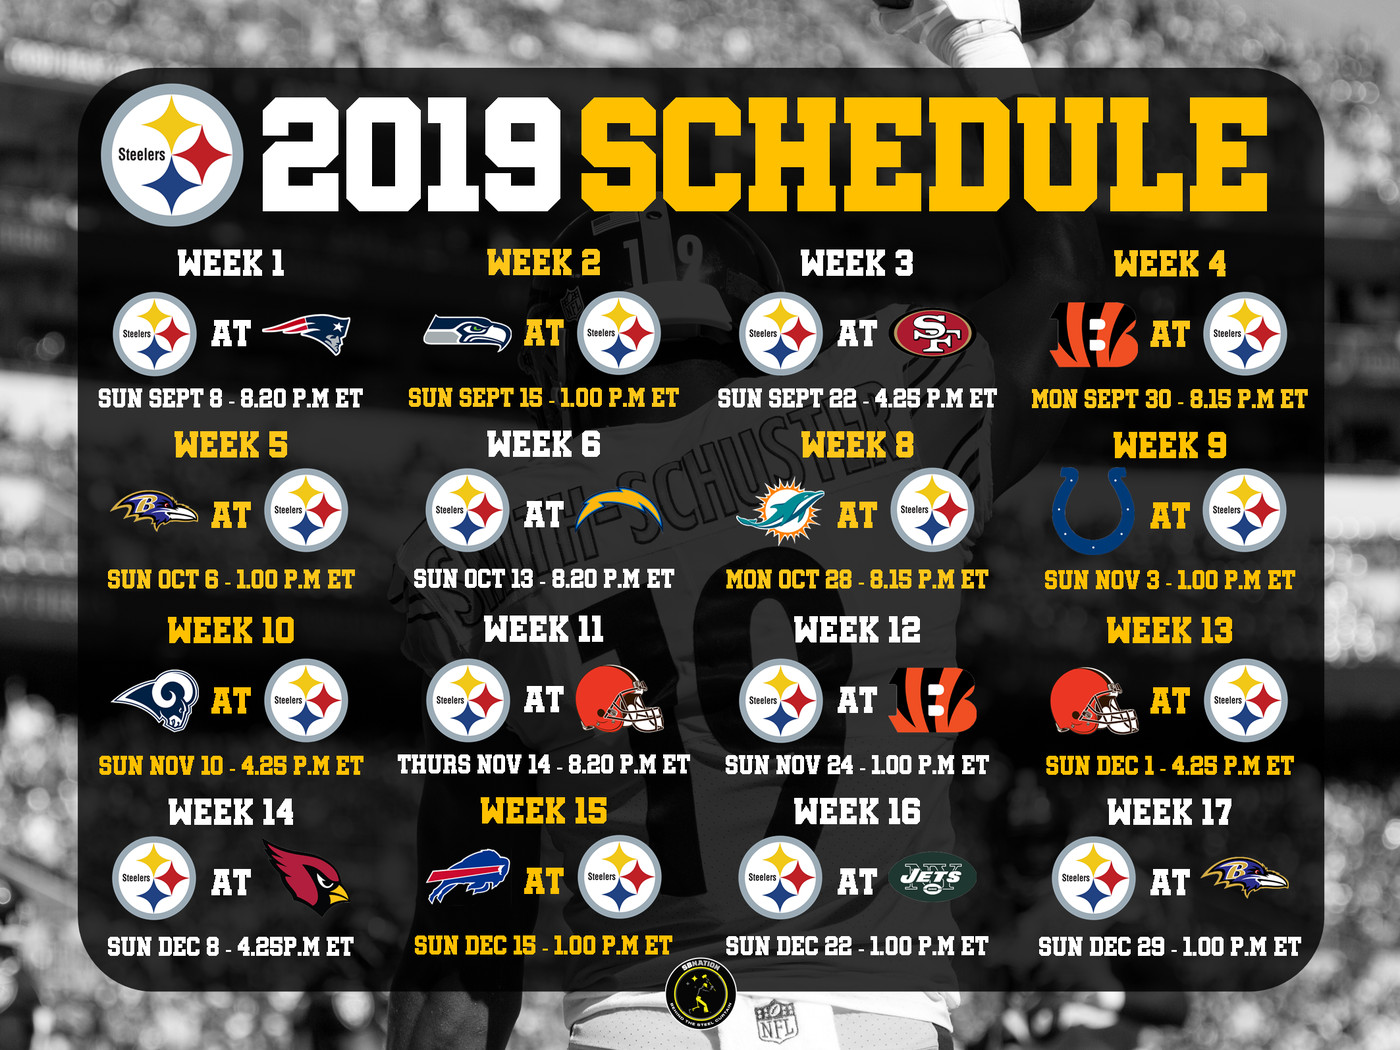 Steelers Home Schedule 2019 Pittsburgh Steelers 2019 Schedule: Rumors, leaks and NFL updates